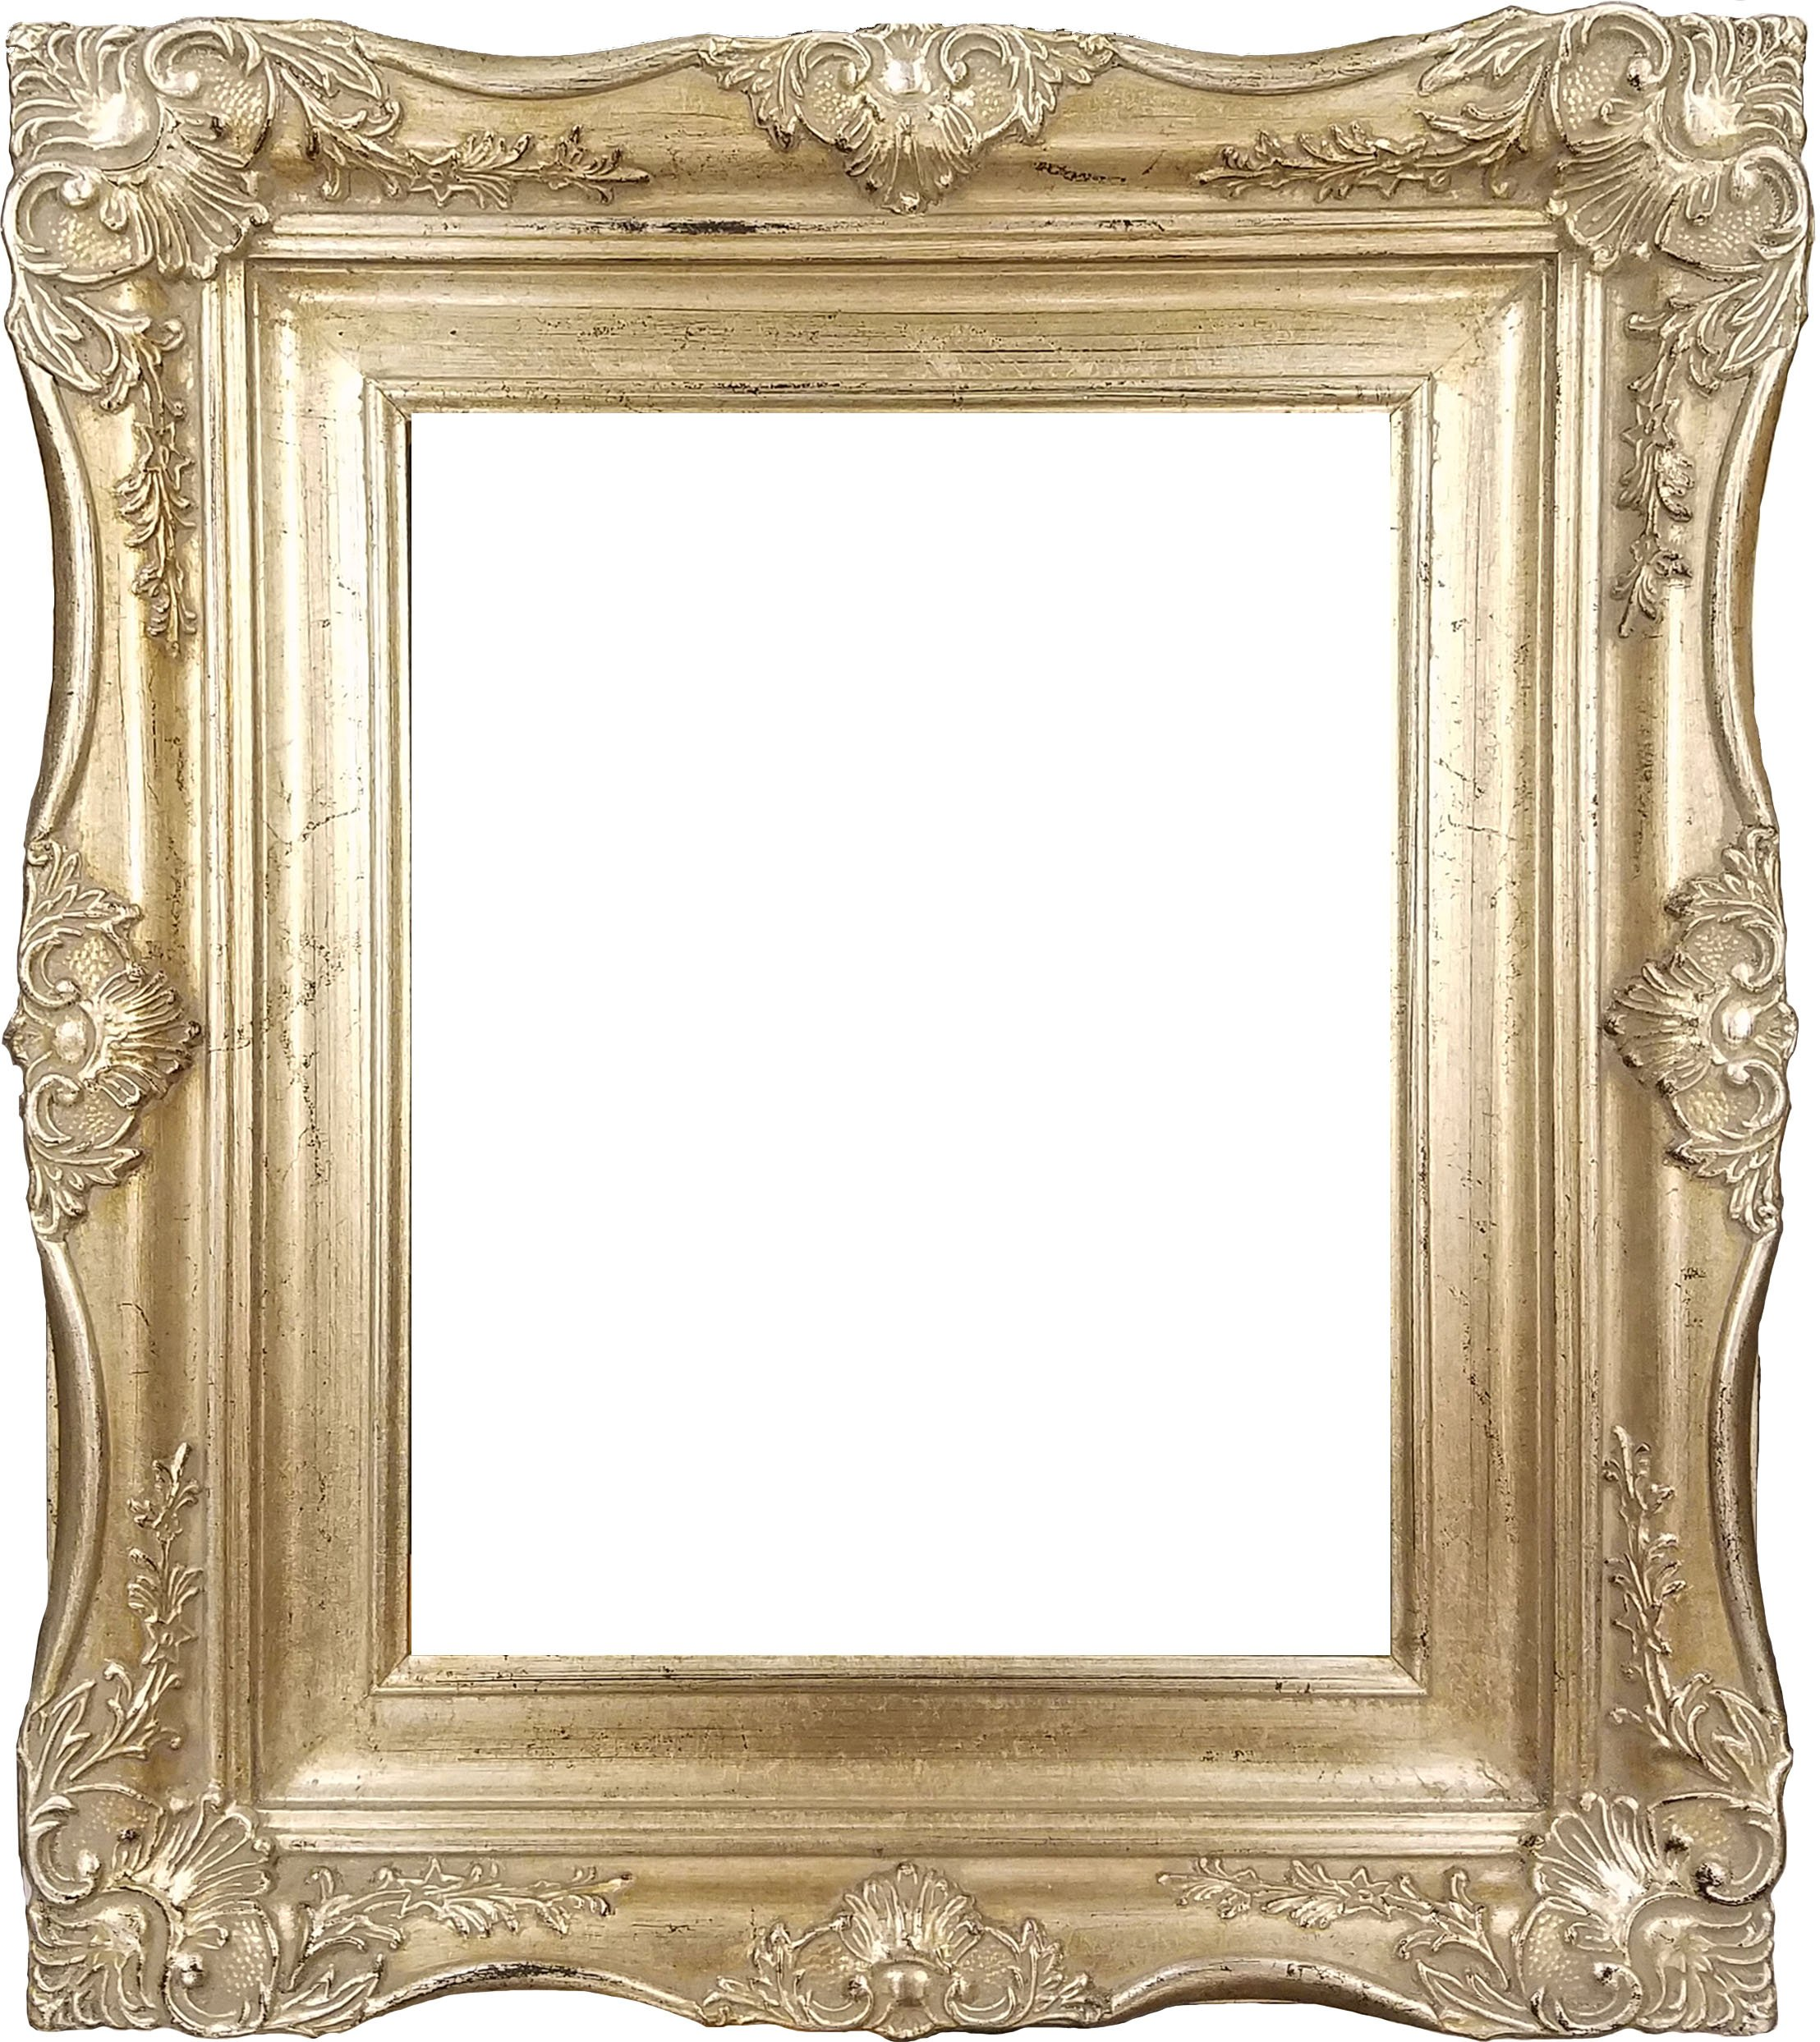 "4"" Vintage Ornate Baroque French Silver Picture Frame (11x14 Inch)"